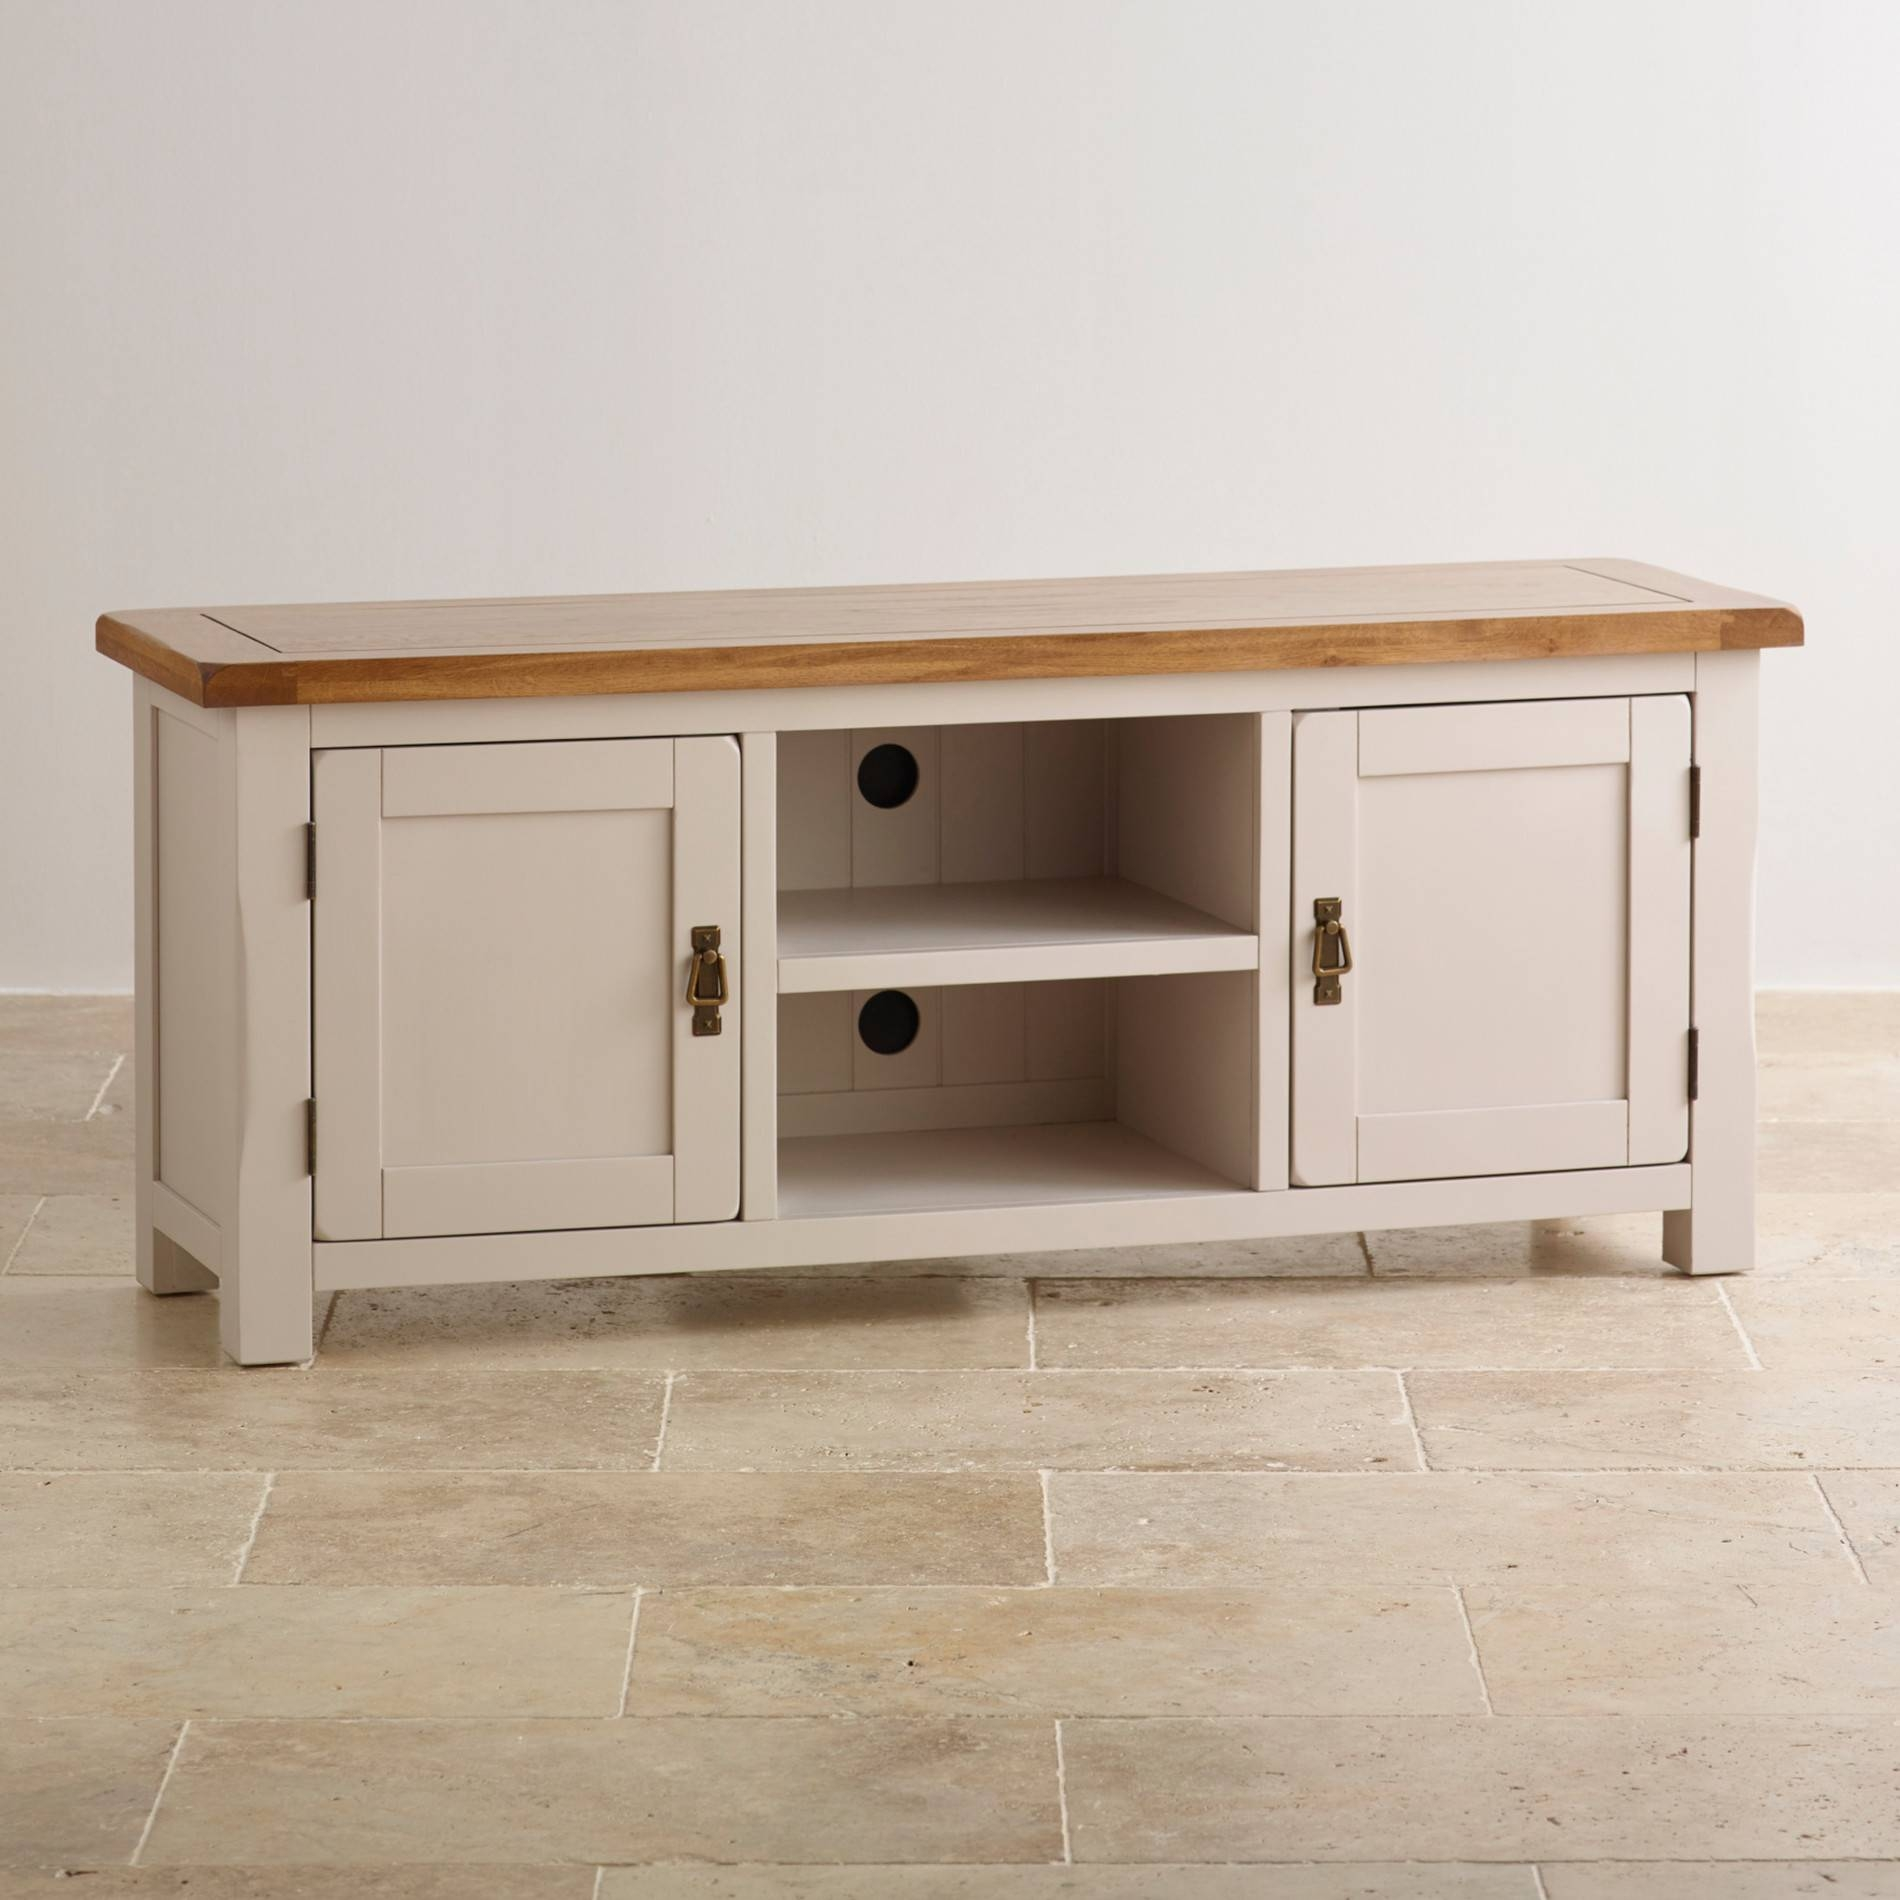 Kemble Widescreen Tv Cabinet In Solid Oak | Oak Furniture Land intended for Rustic Tv Cabinets (Image 4 of 15)